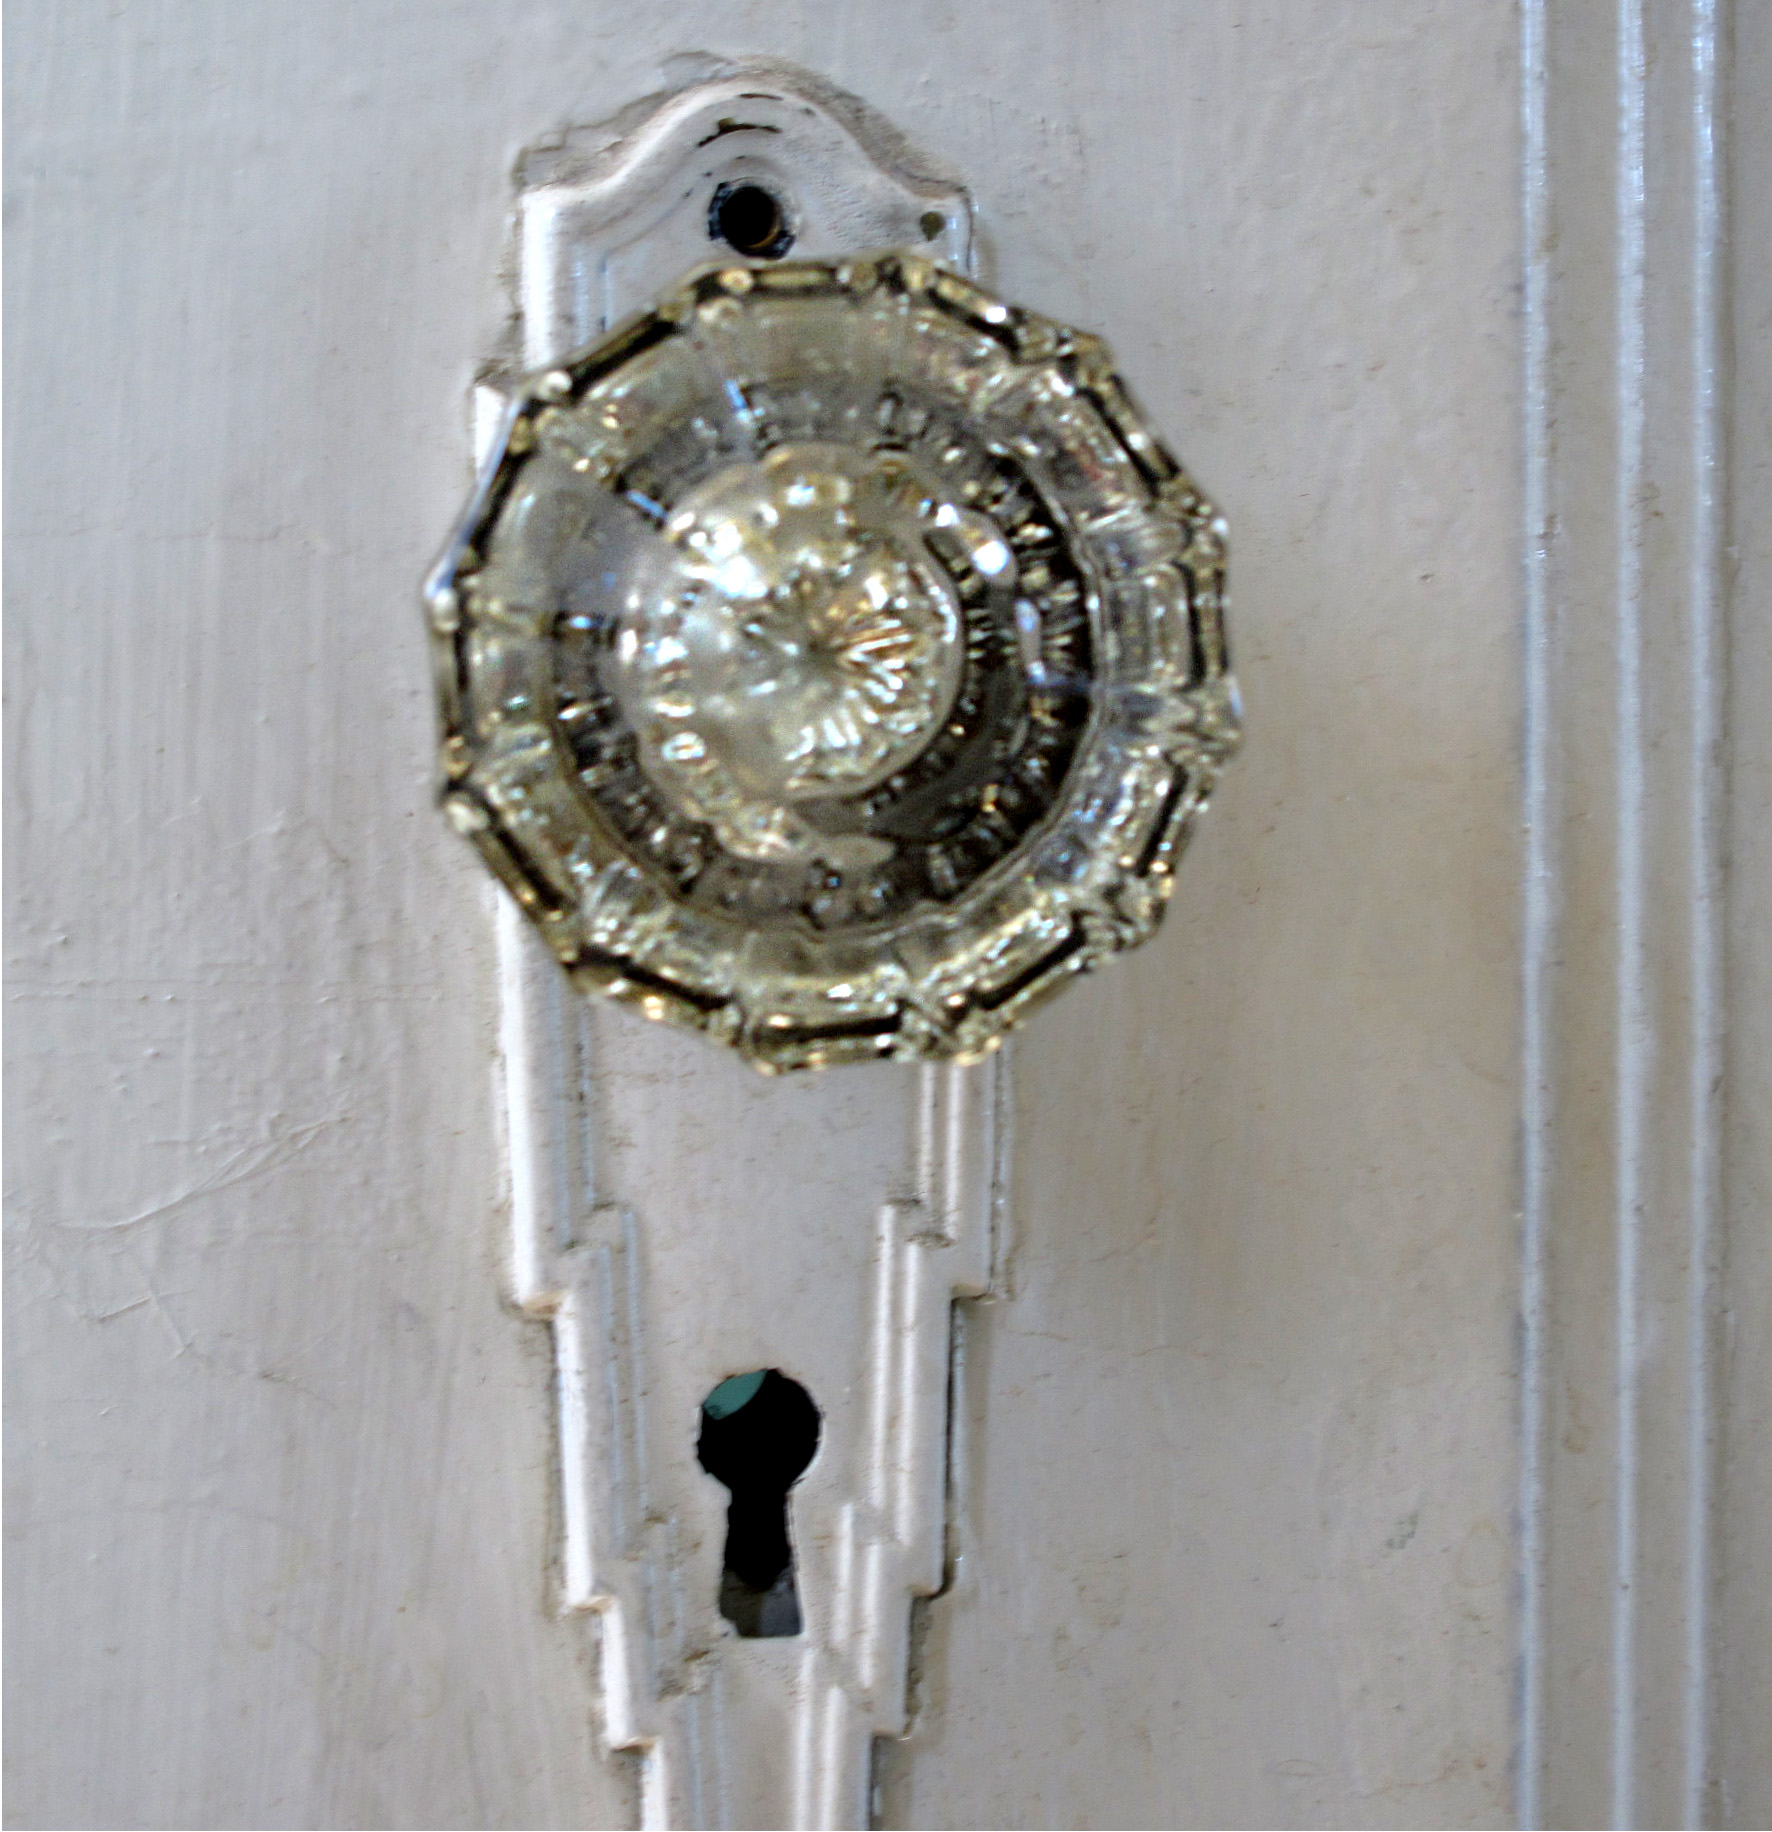 locksmiths install door knobs and locks